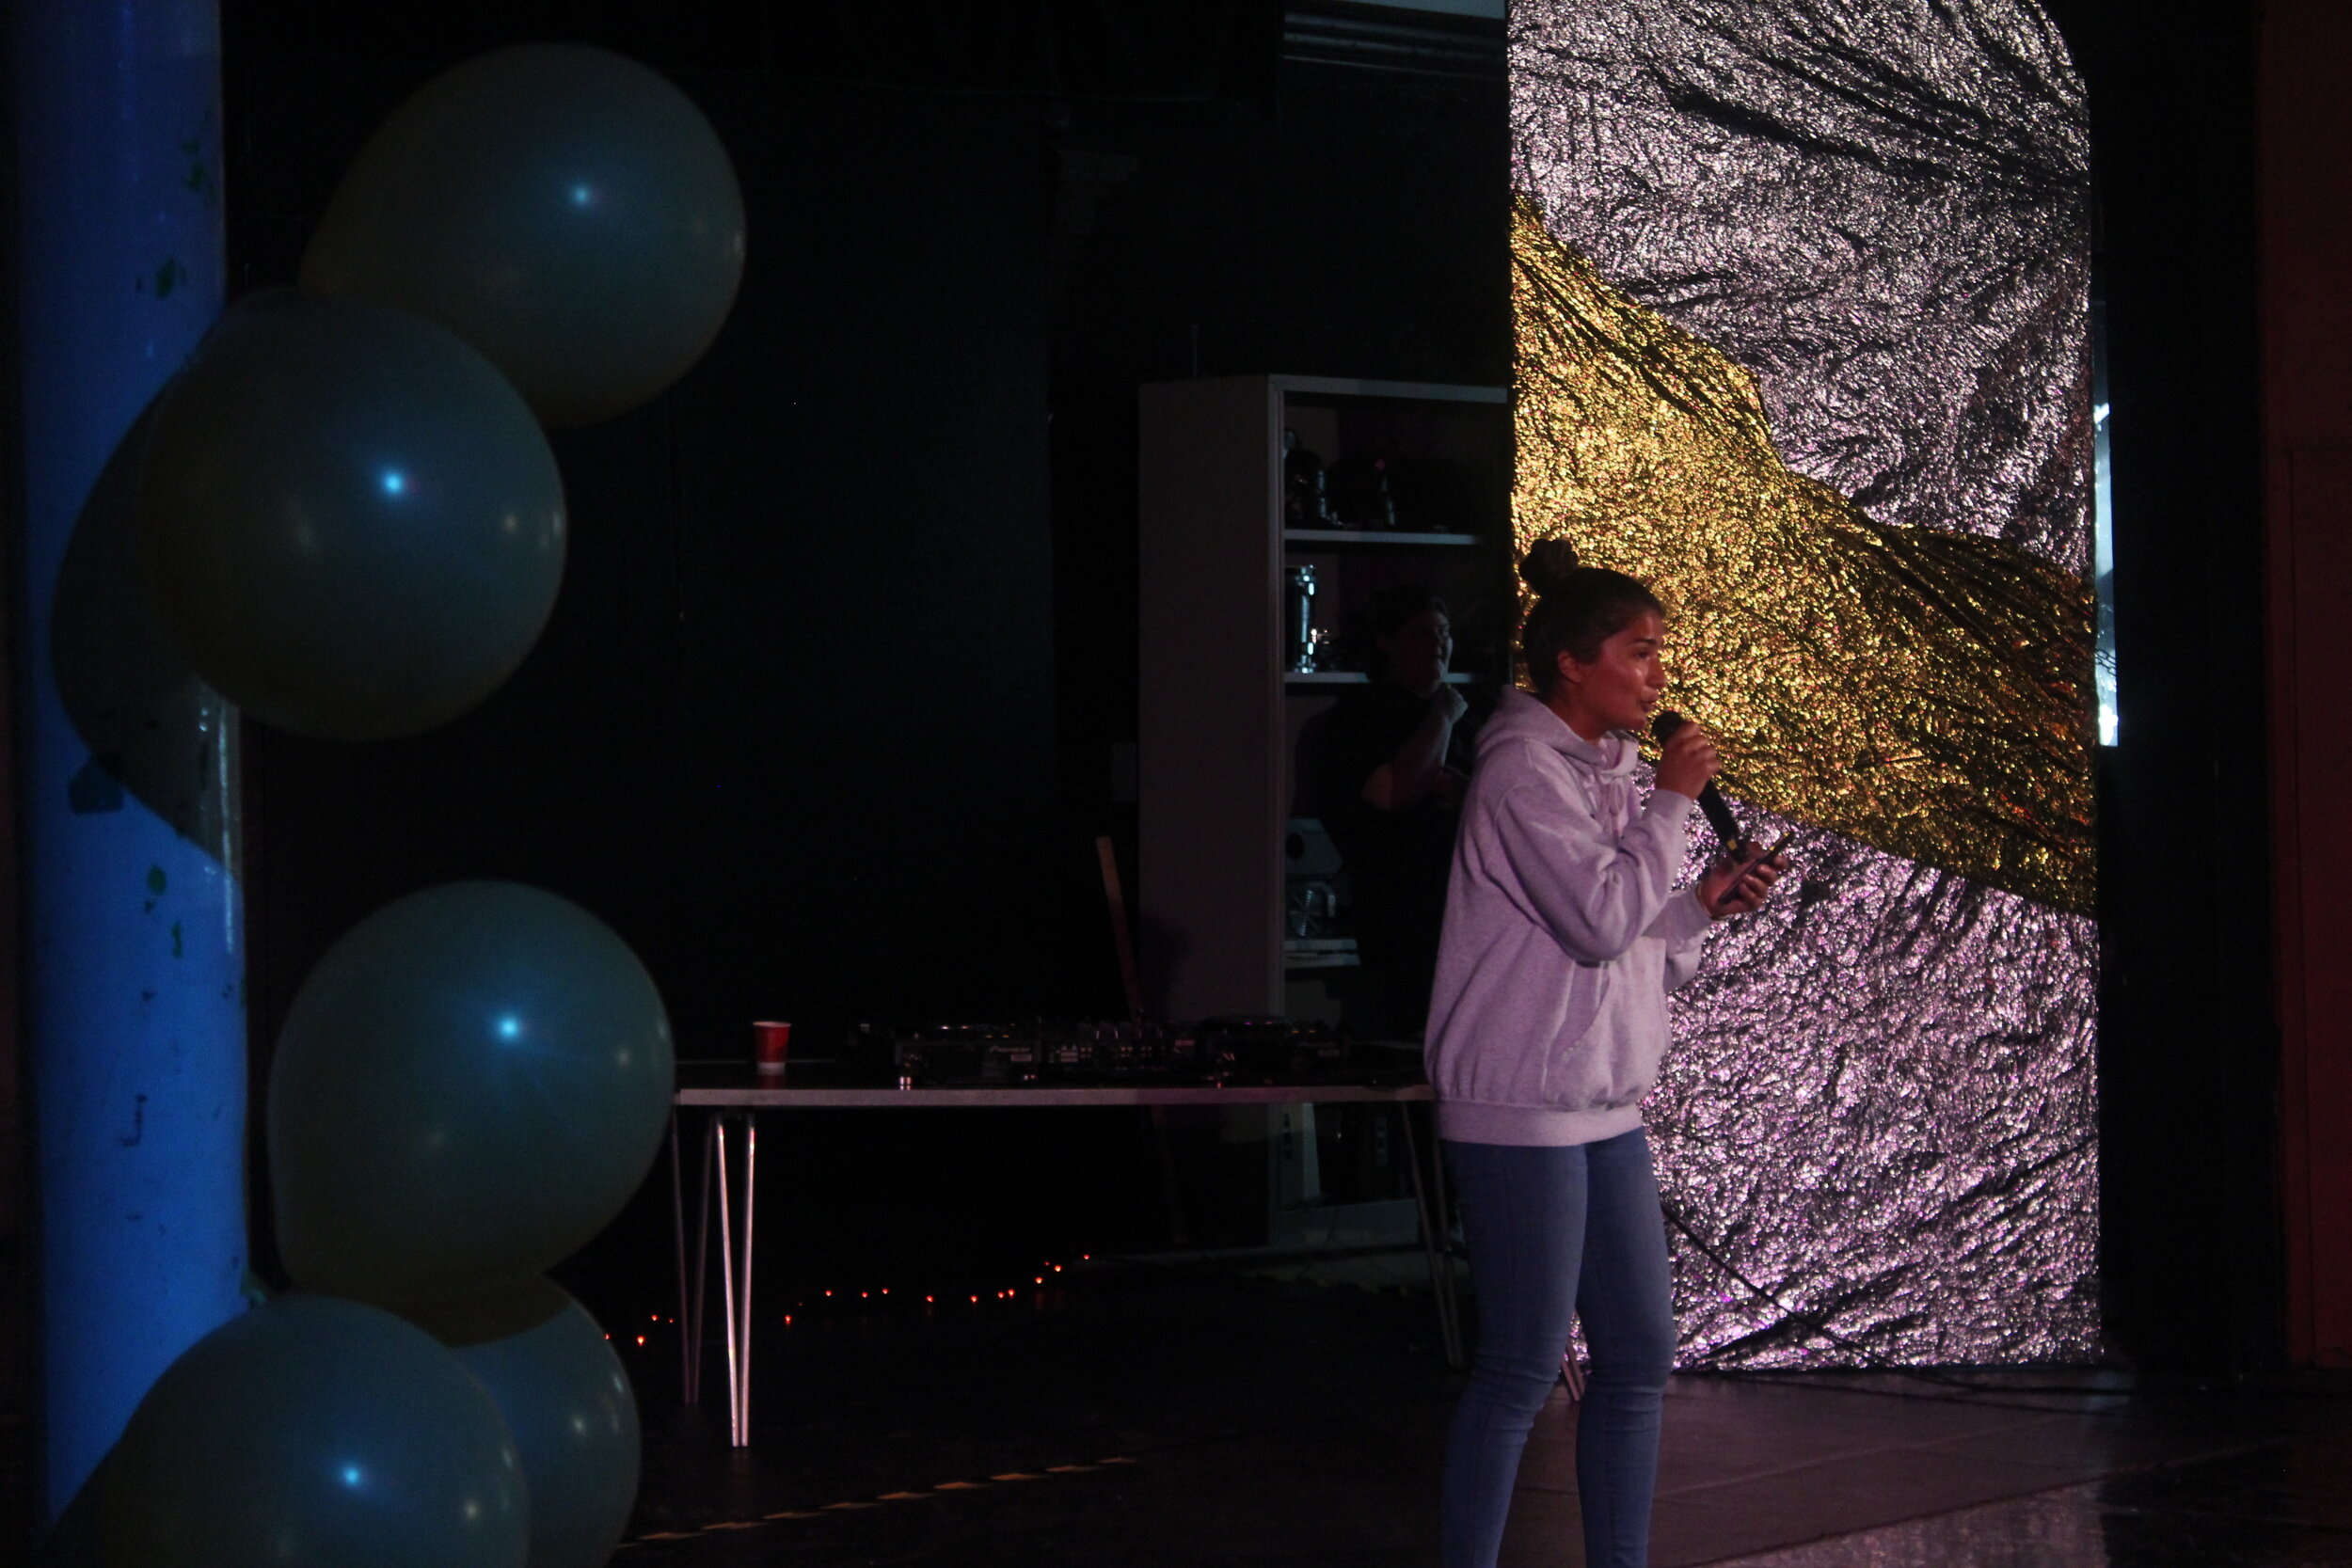 Sabrina Islam performed a spoken-word piece to an ambient backing track beat which got the audience still and silent!